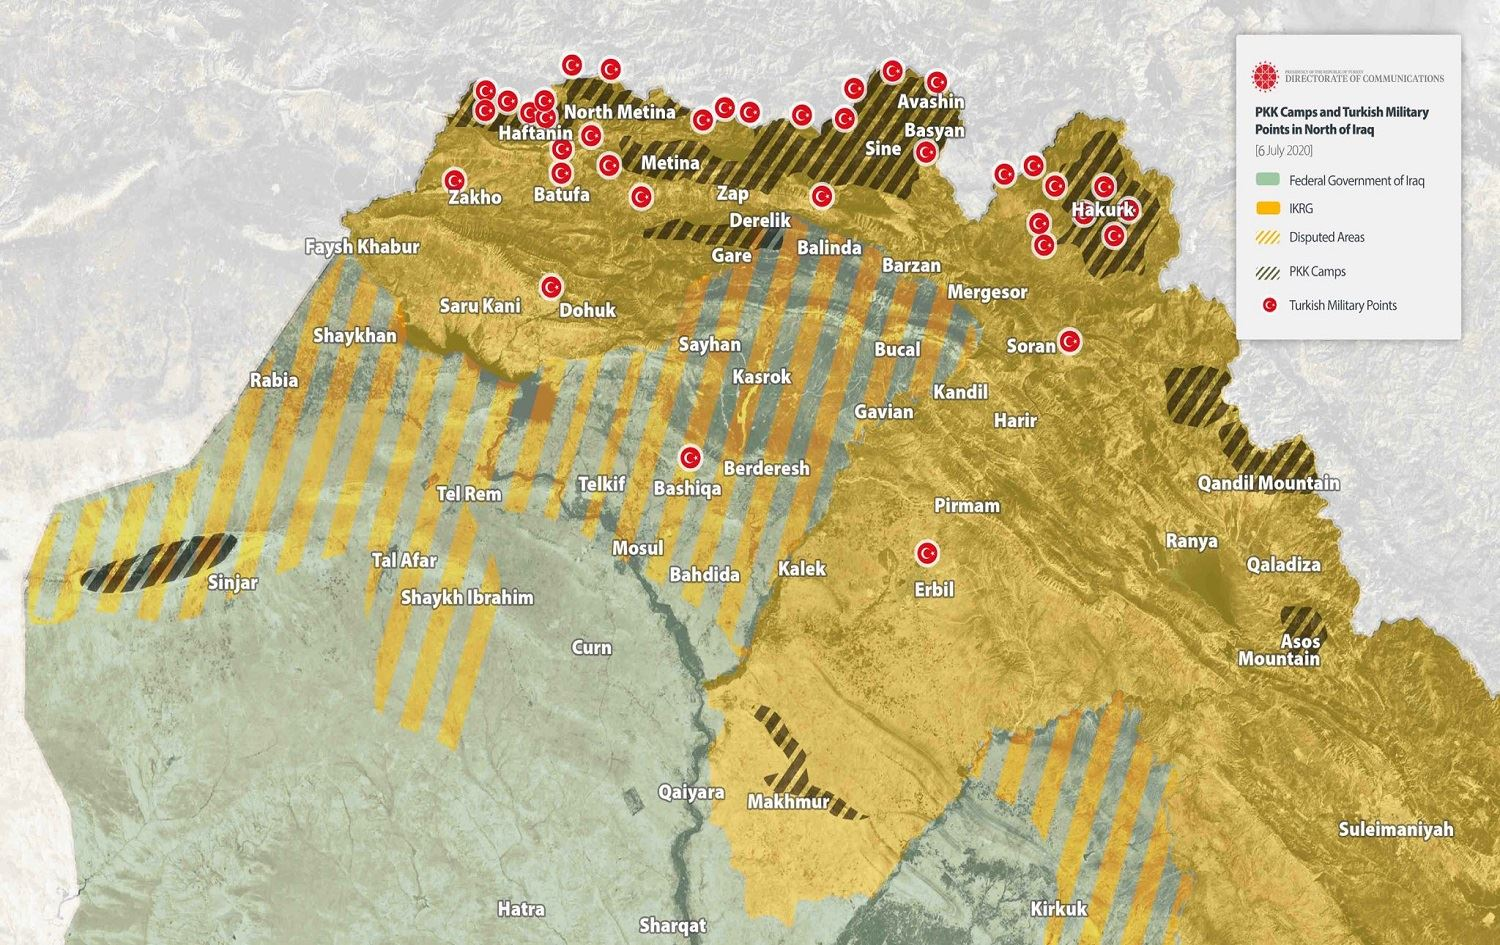 288_turkish_bases_in_south_kurdistan_cr_